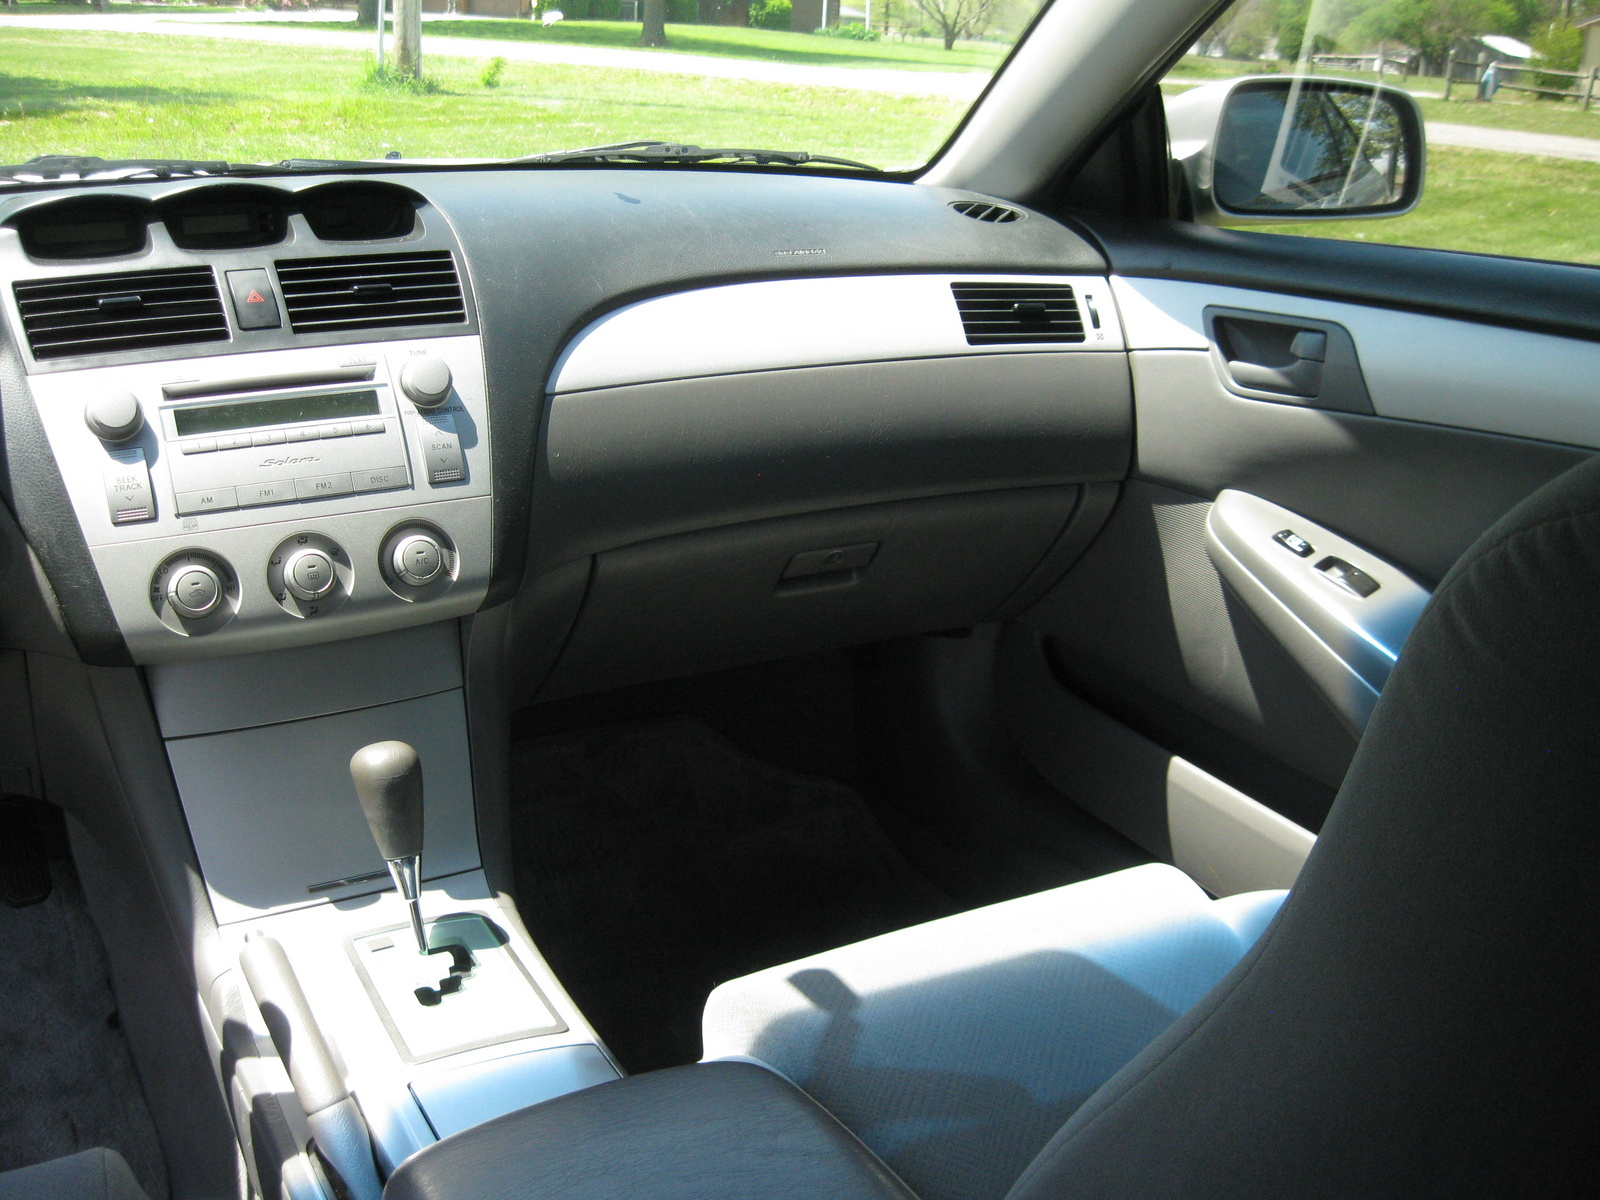 2006 toyota camry solara interior pictures cargurus. Black Bedroom Furniture Sets. Home Design Ideas